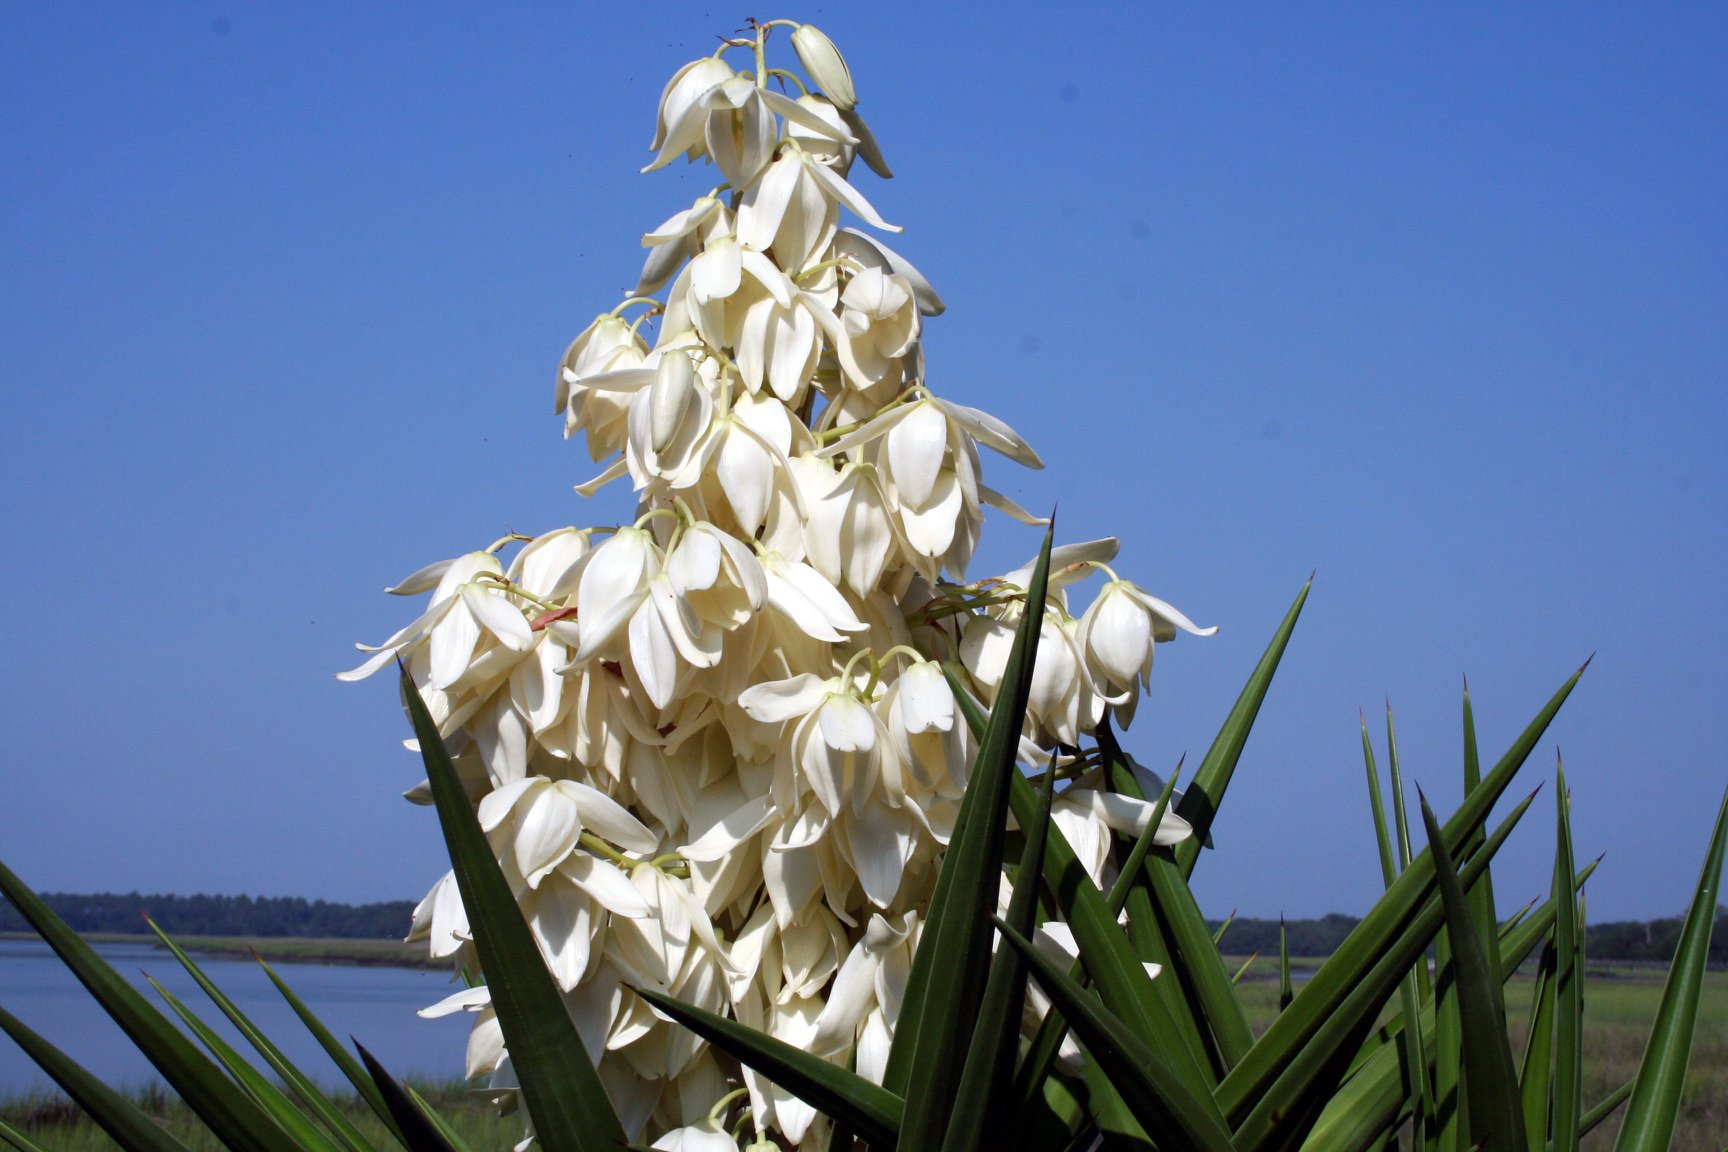 Image Related To Yucca gloriosa (Moundlily Yucca)